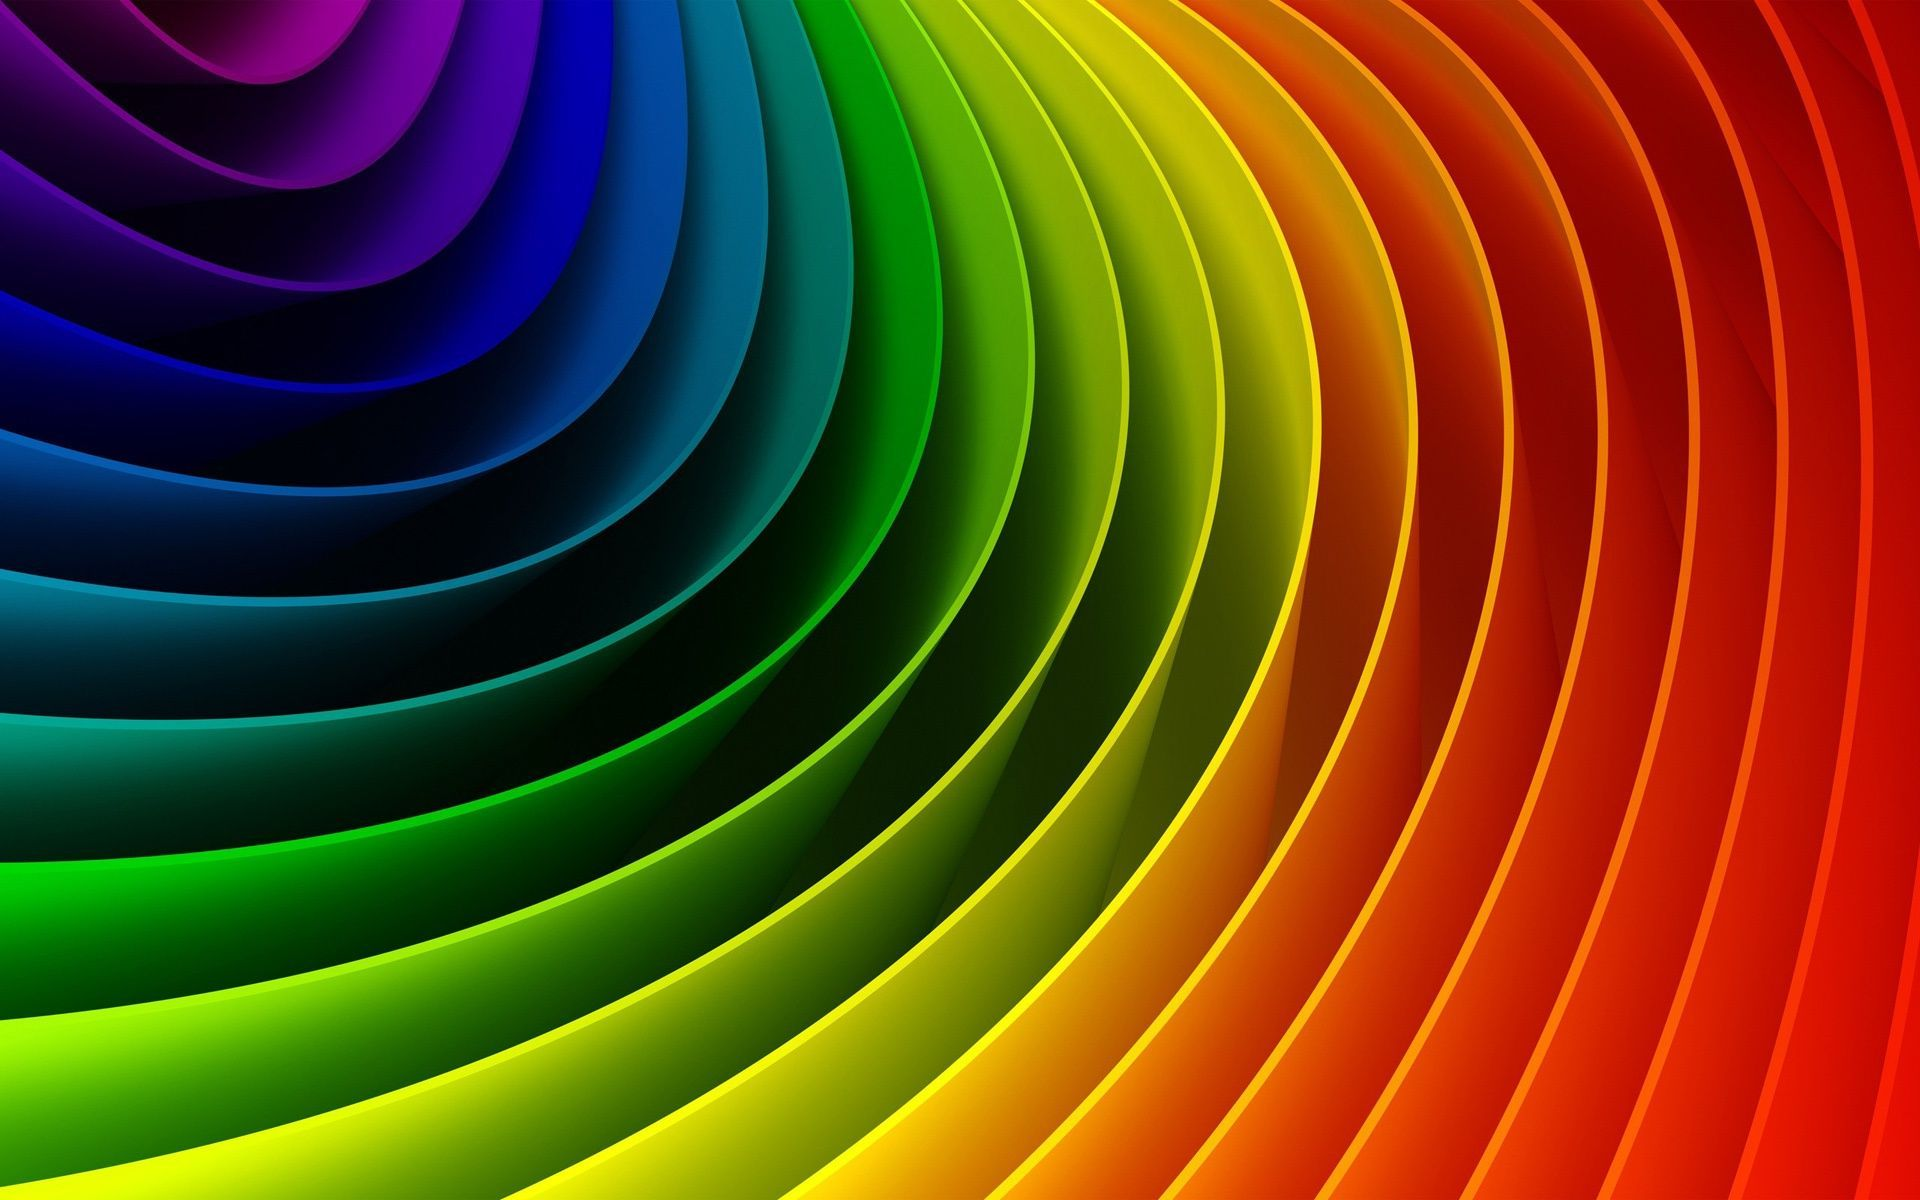 Maze of Rainbow Colors wallpaper | Rainbow effects | Pinterest ...